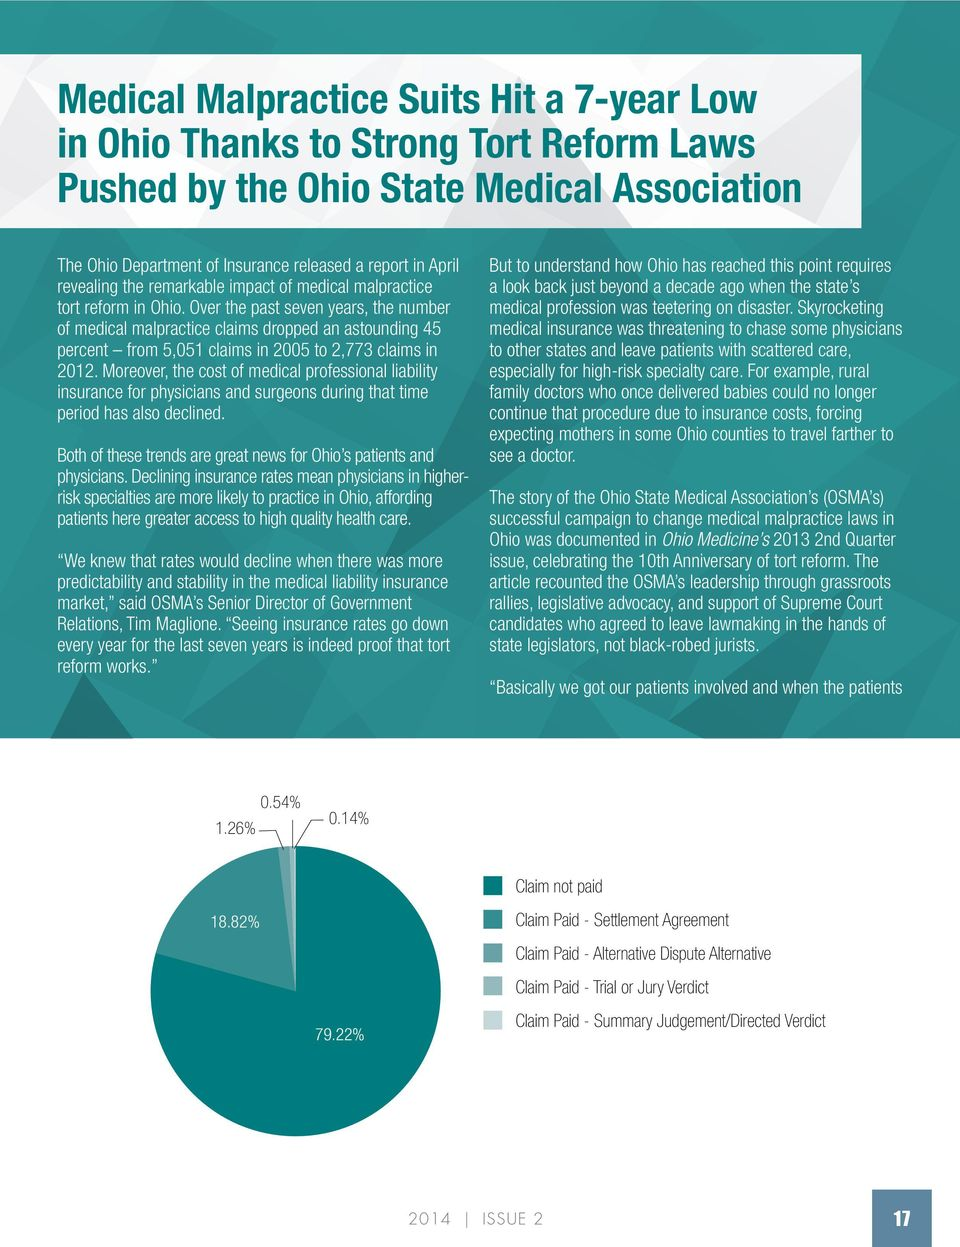 Over the past seven years, the number of medical malpractice claims dropped an astounding 45 percent from 5,051 claims in 2005 to 2,773 claims in 2012.